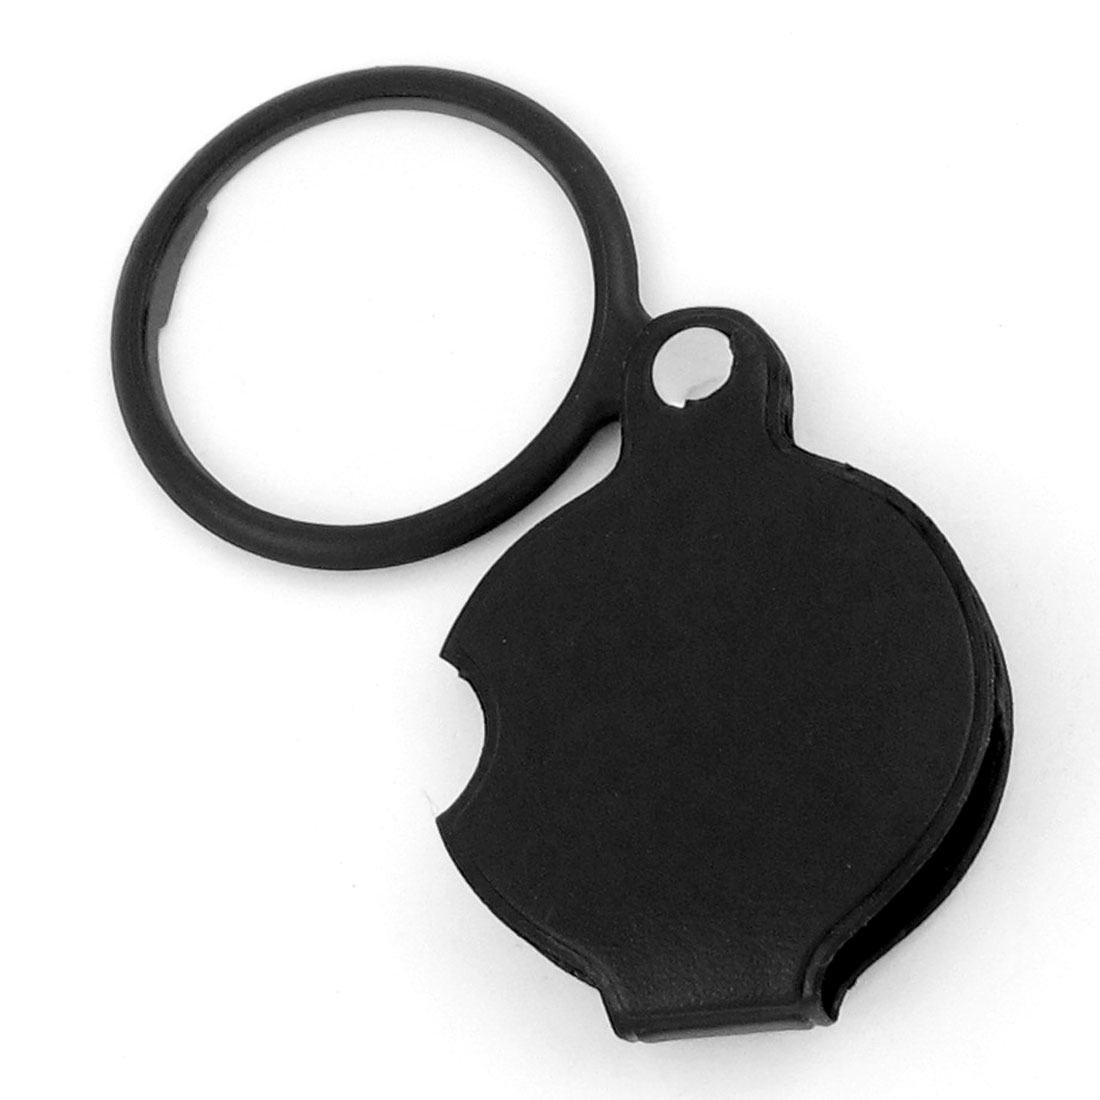 4X Round Shape Foldable Pocket Spiegel Magnifying Glass Black